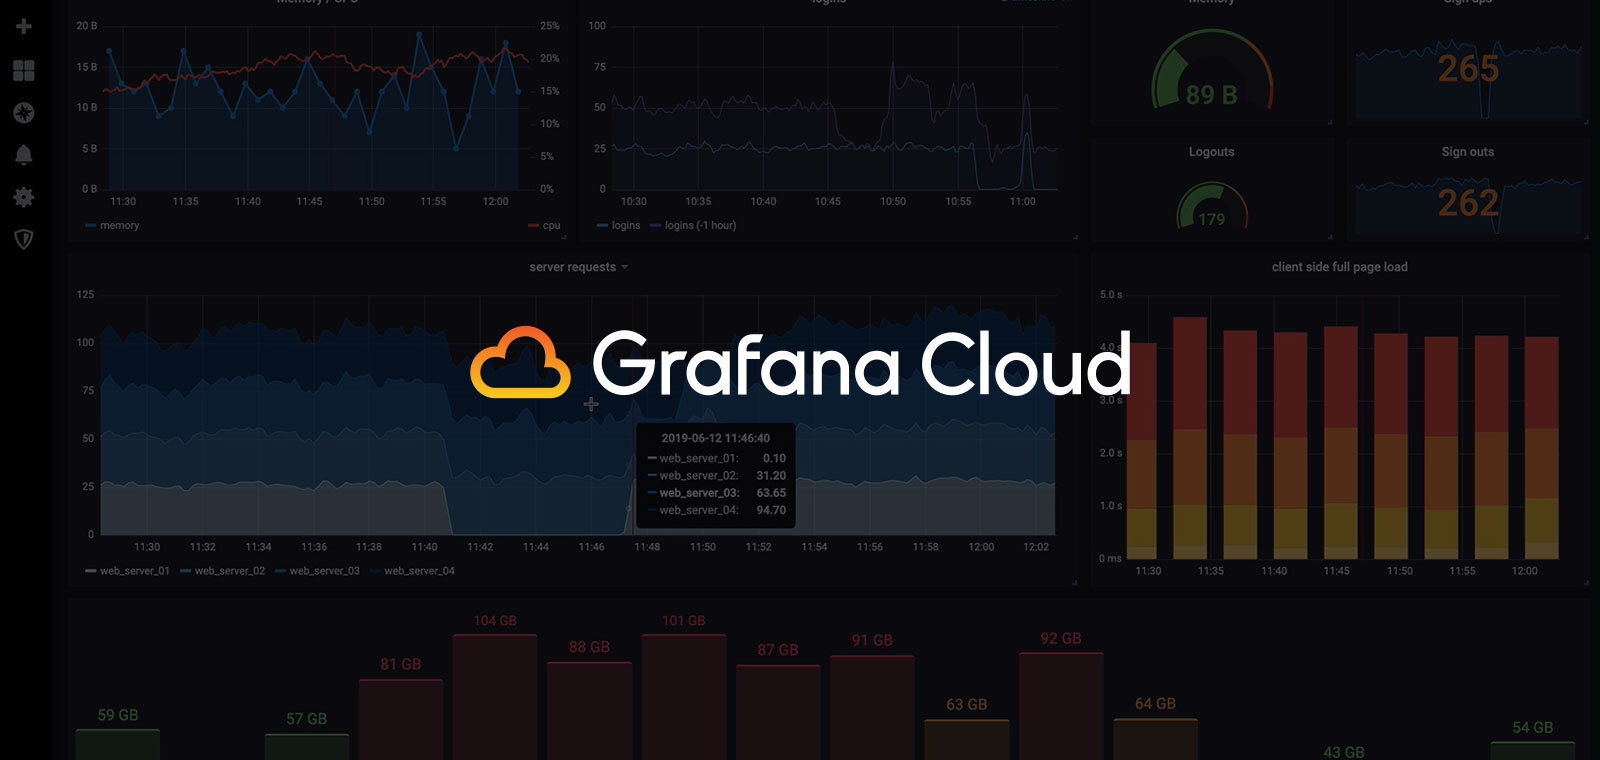 Grafana Cloud